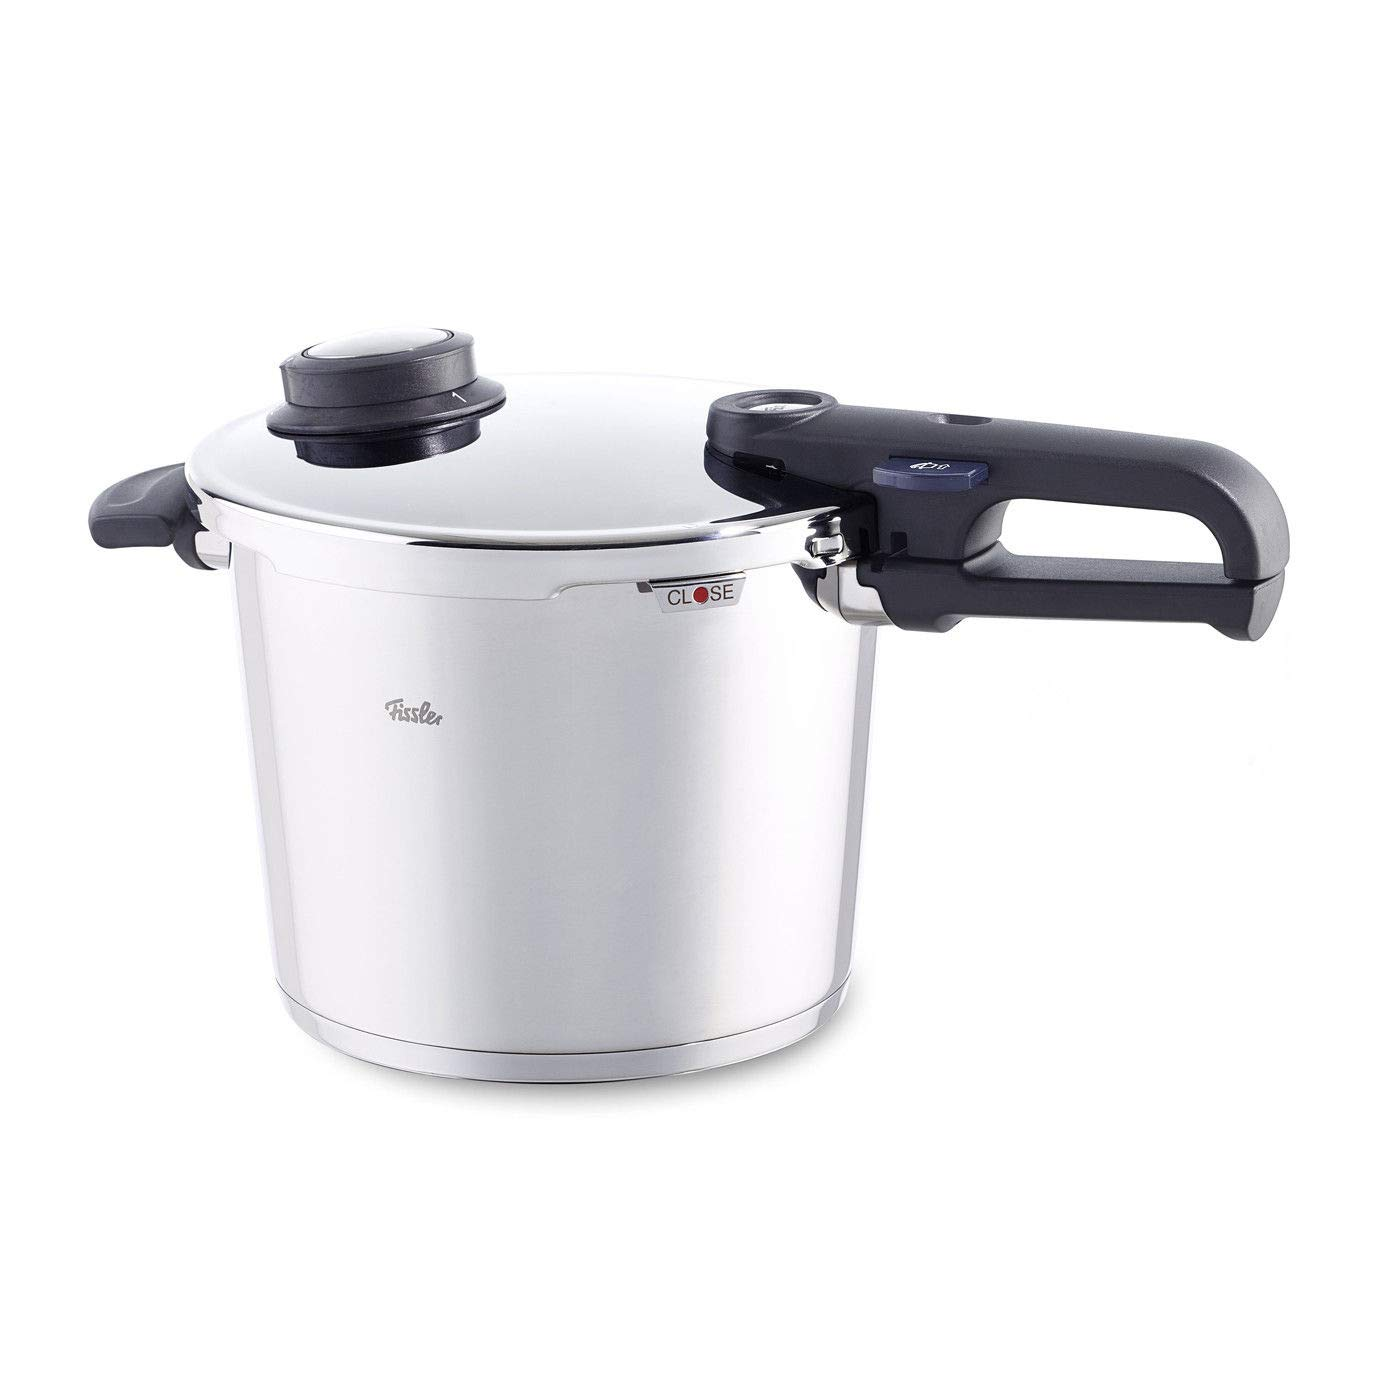 Fissler Vitavit Premium Stainless Steel 6.4 Quart Pressure Cooker with Steamer Insert